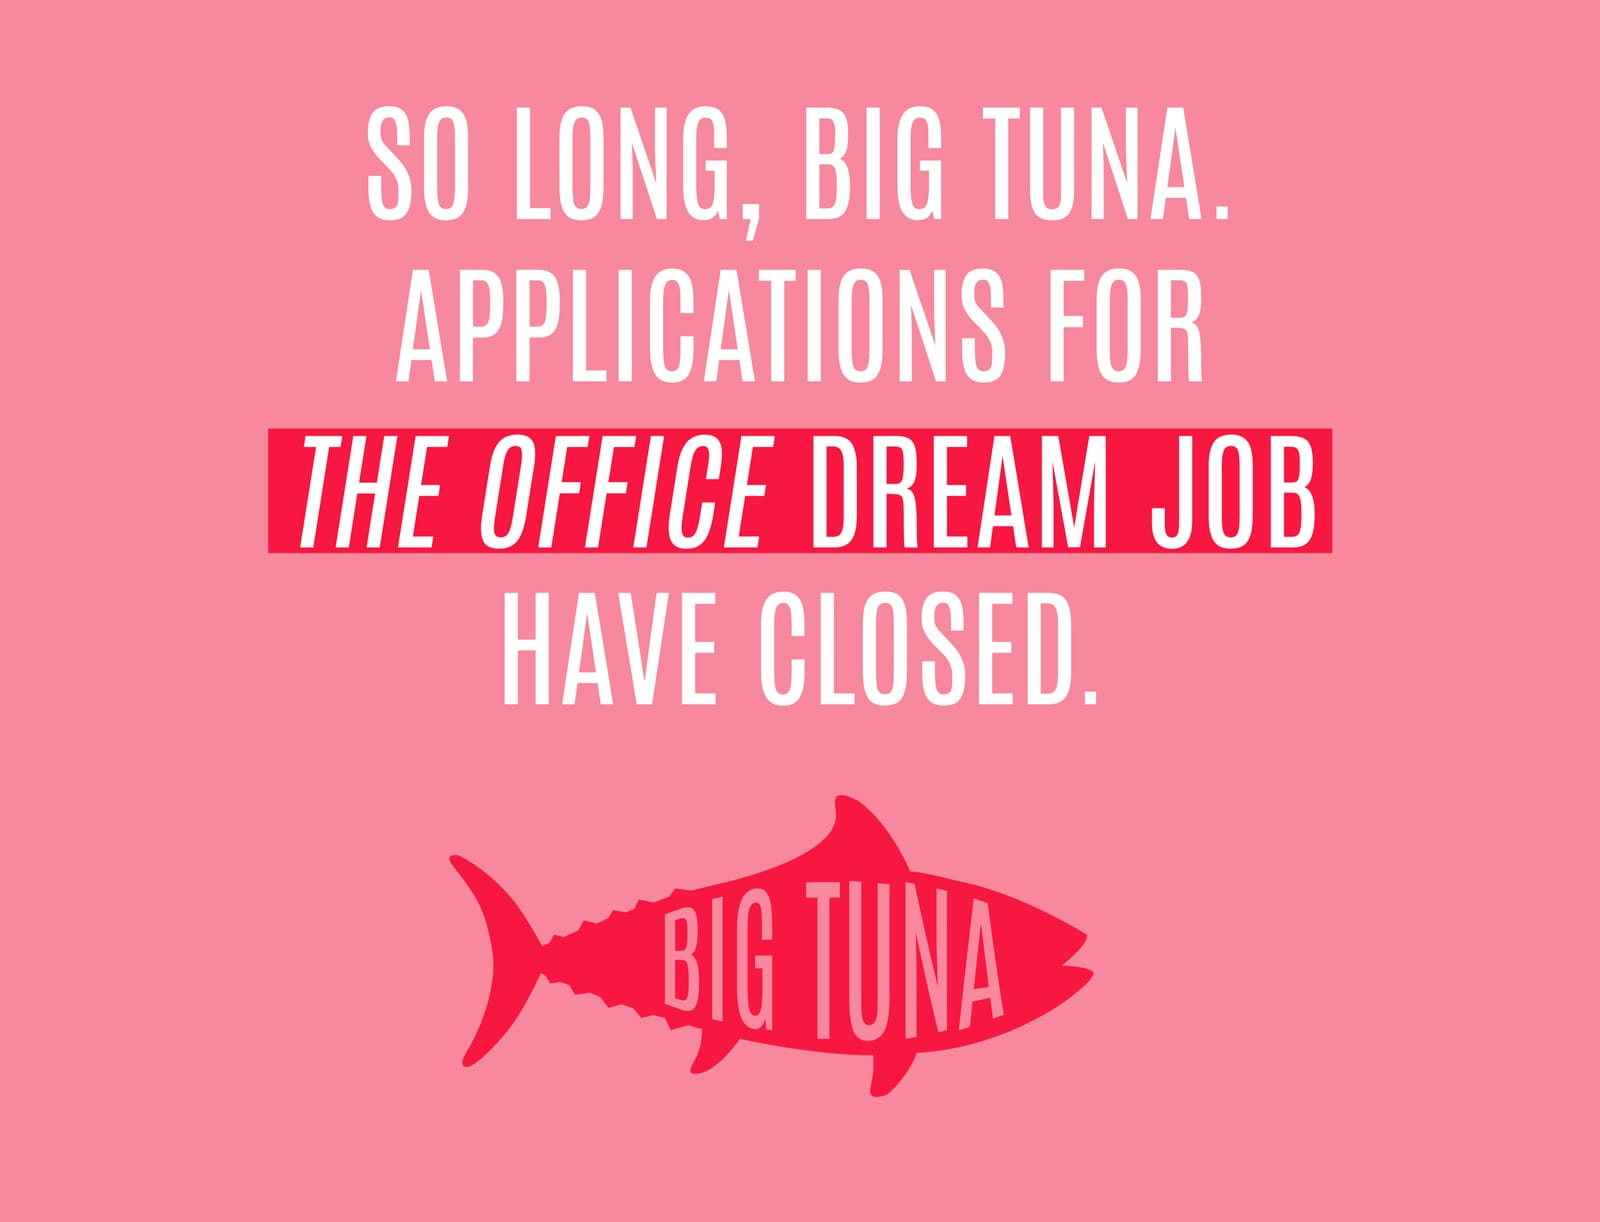 So Long, Big Tuna, applications for The Office dream job have closed